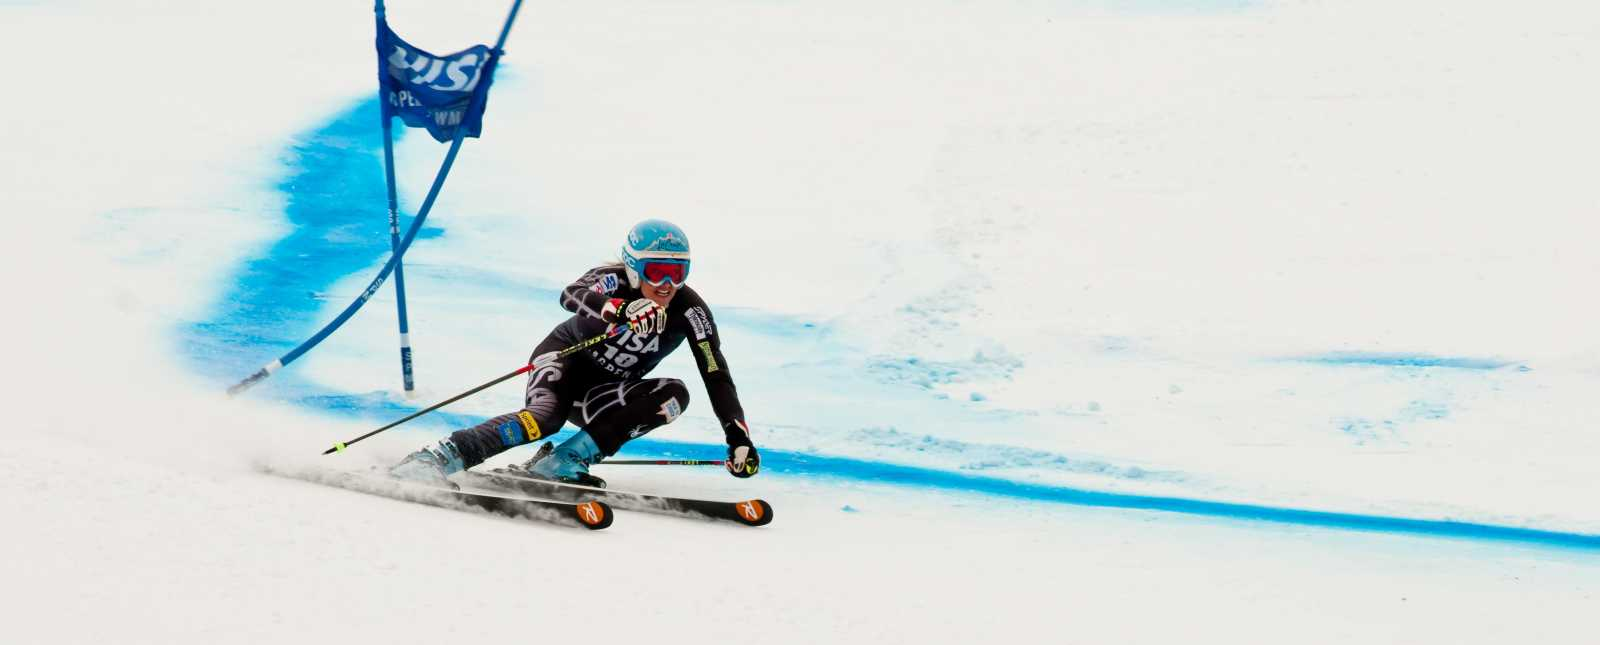 Winter Olympics Downhill Skiing